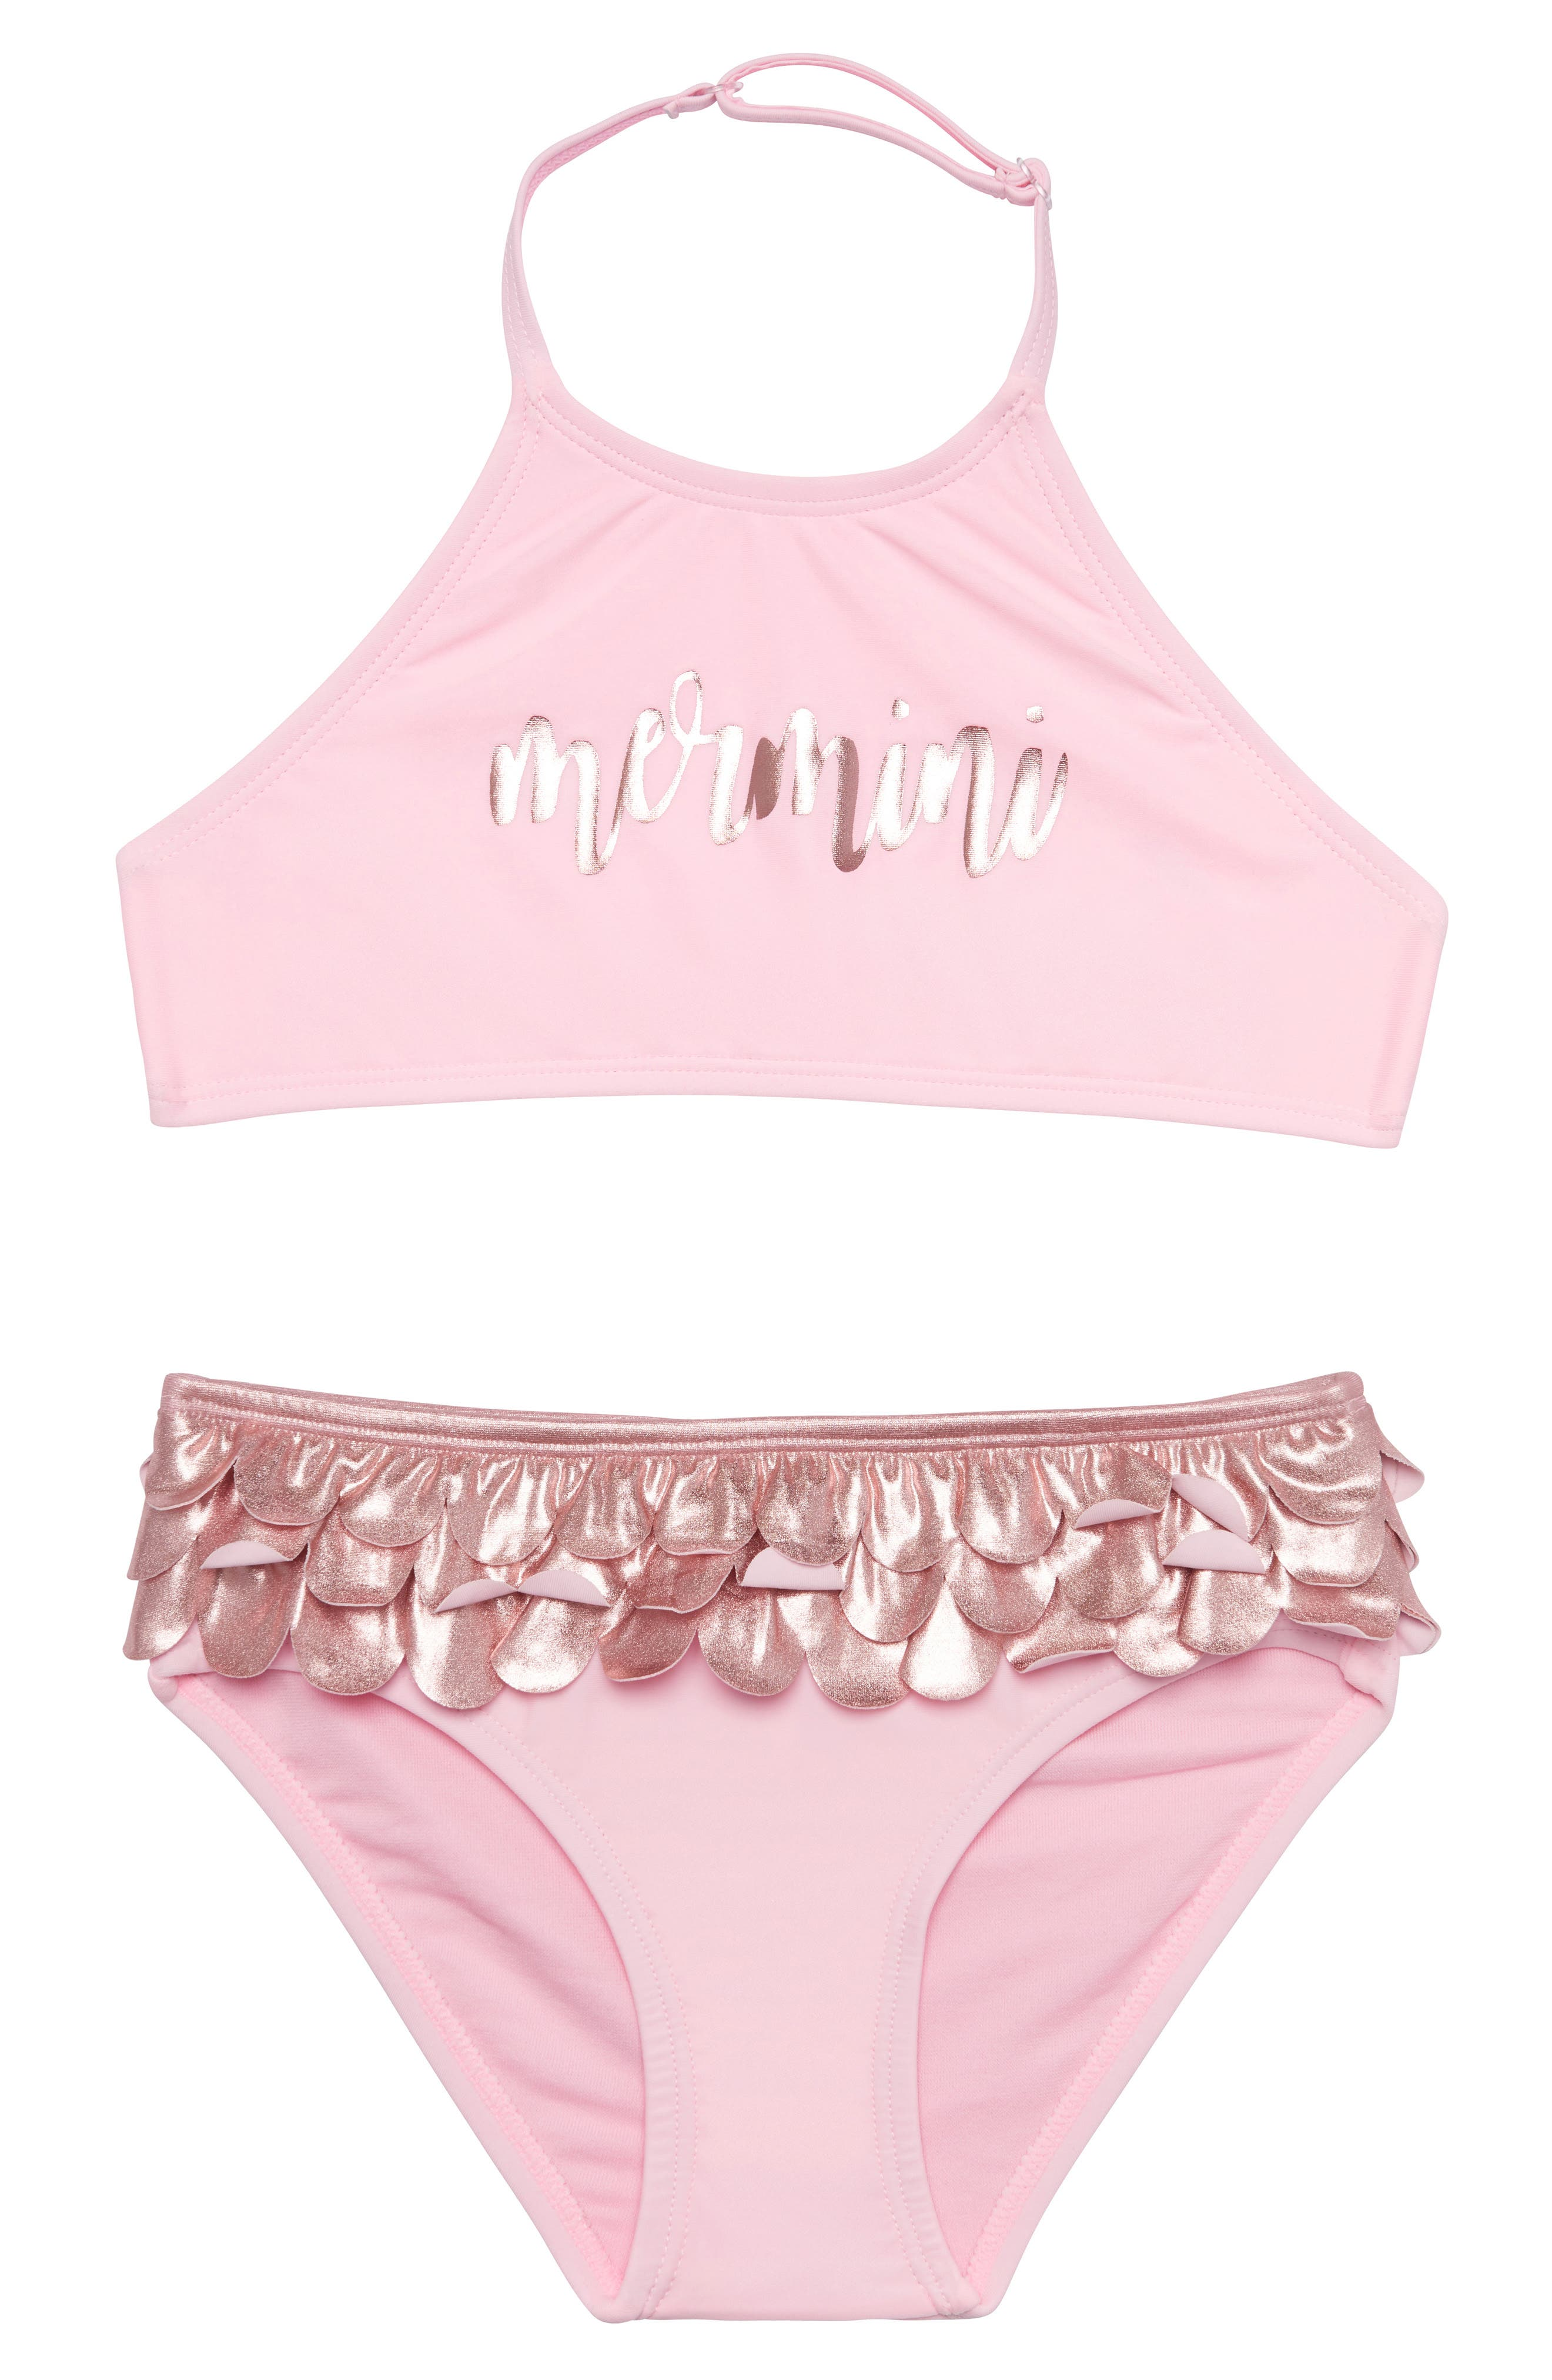 Mermaid Life Two-Piece Swimsuit,                         Main,                         color, ROSE